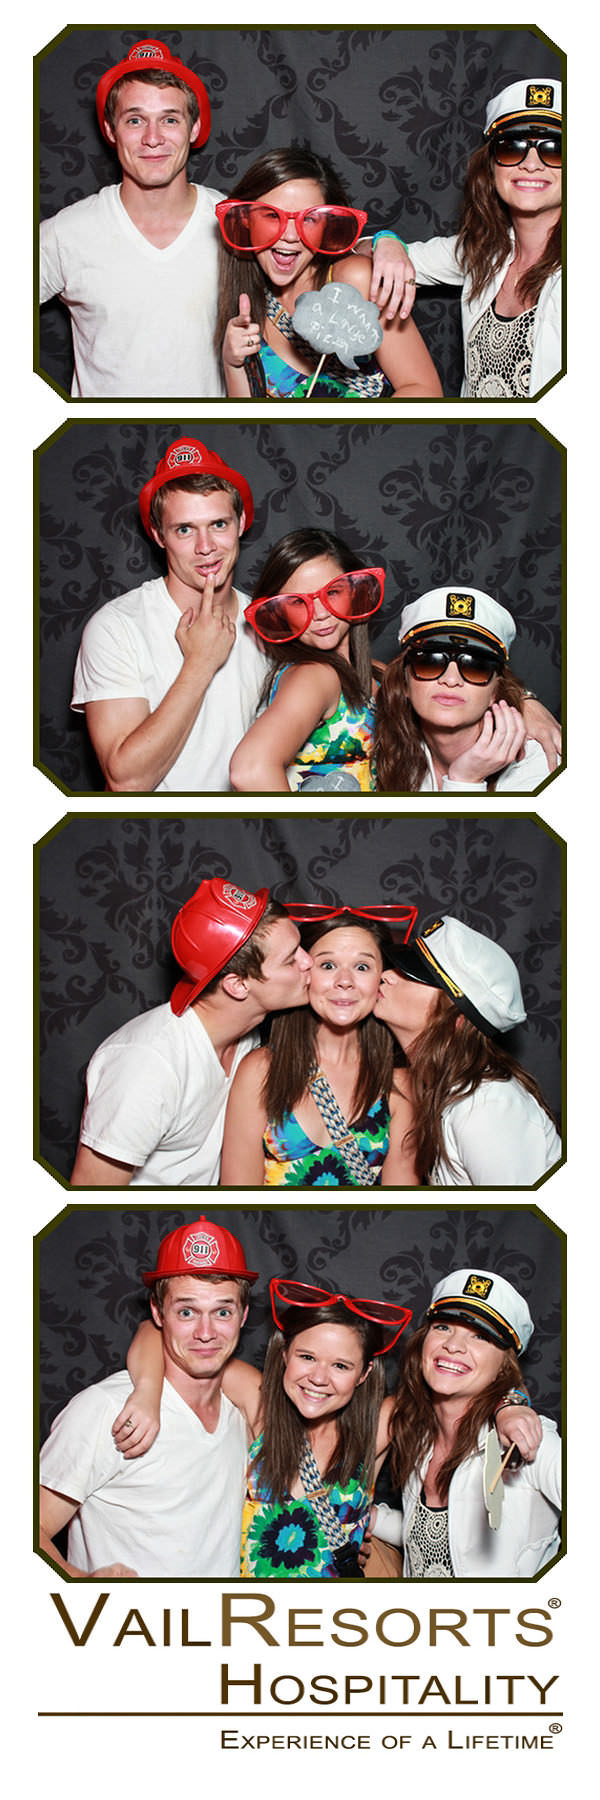 photo-booth-rental-fun-in-vail-CO